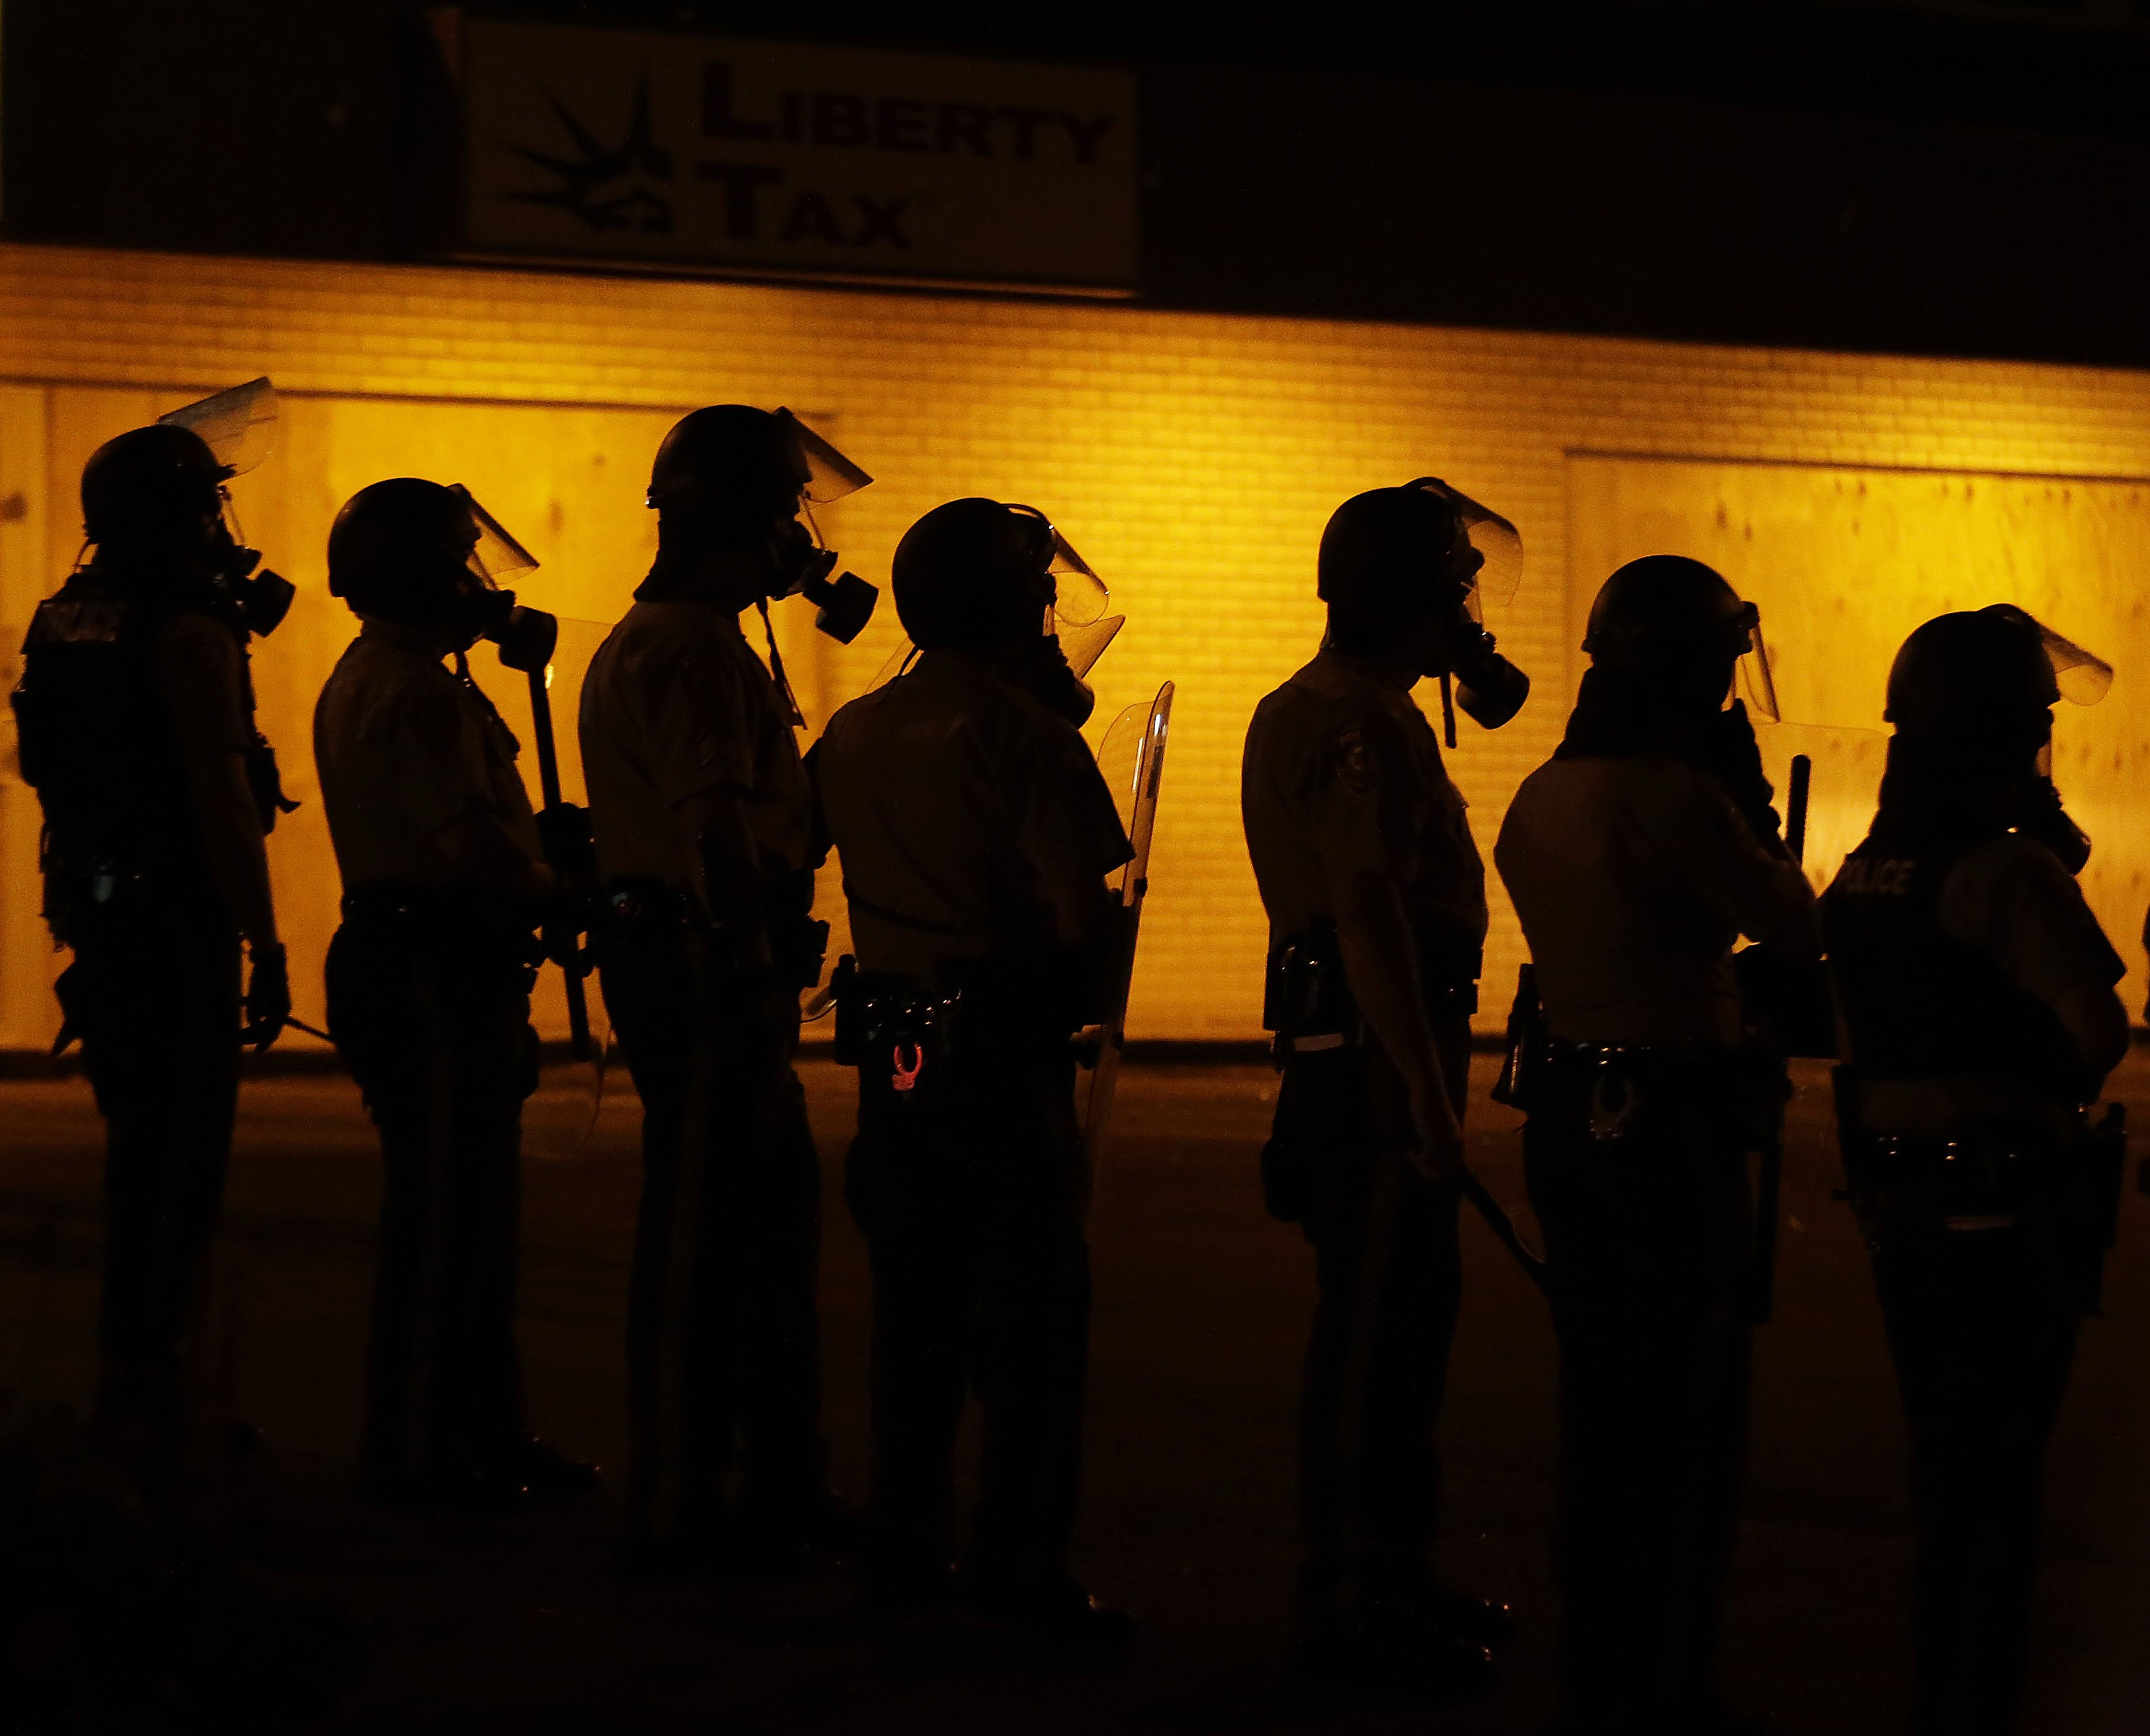 Police wait to advance after tear gas was used to disperse a crowd in Ferguson, Mo. on Aug. 17, 2014.